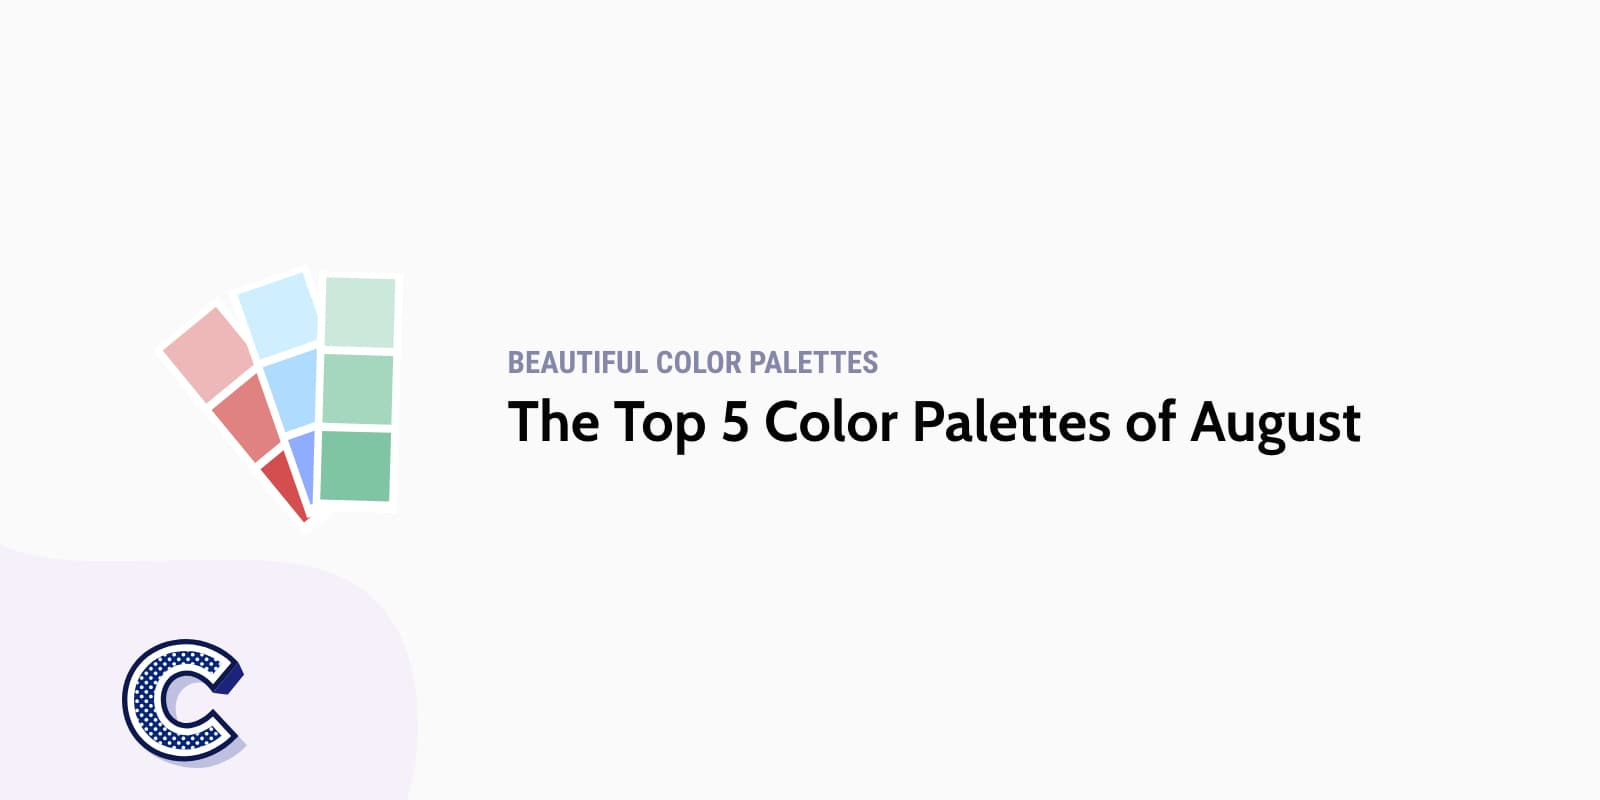 The Top 5 Color Palettes of August